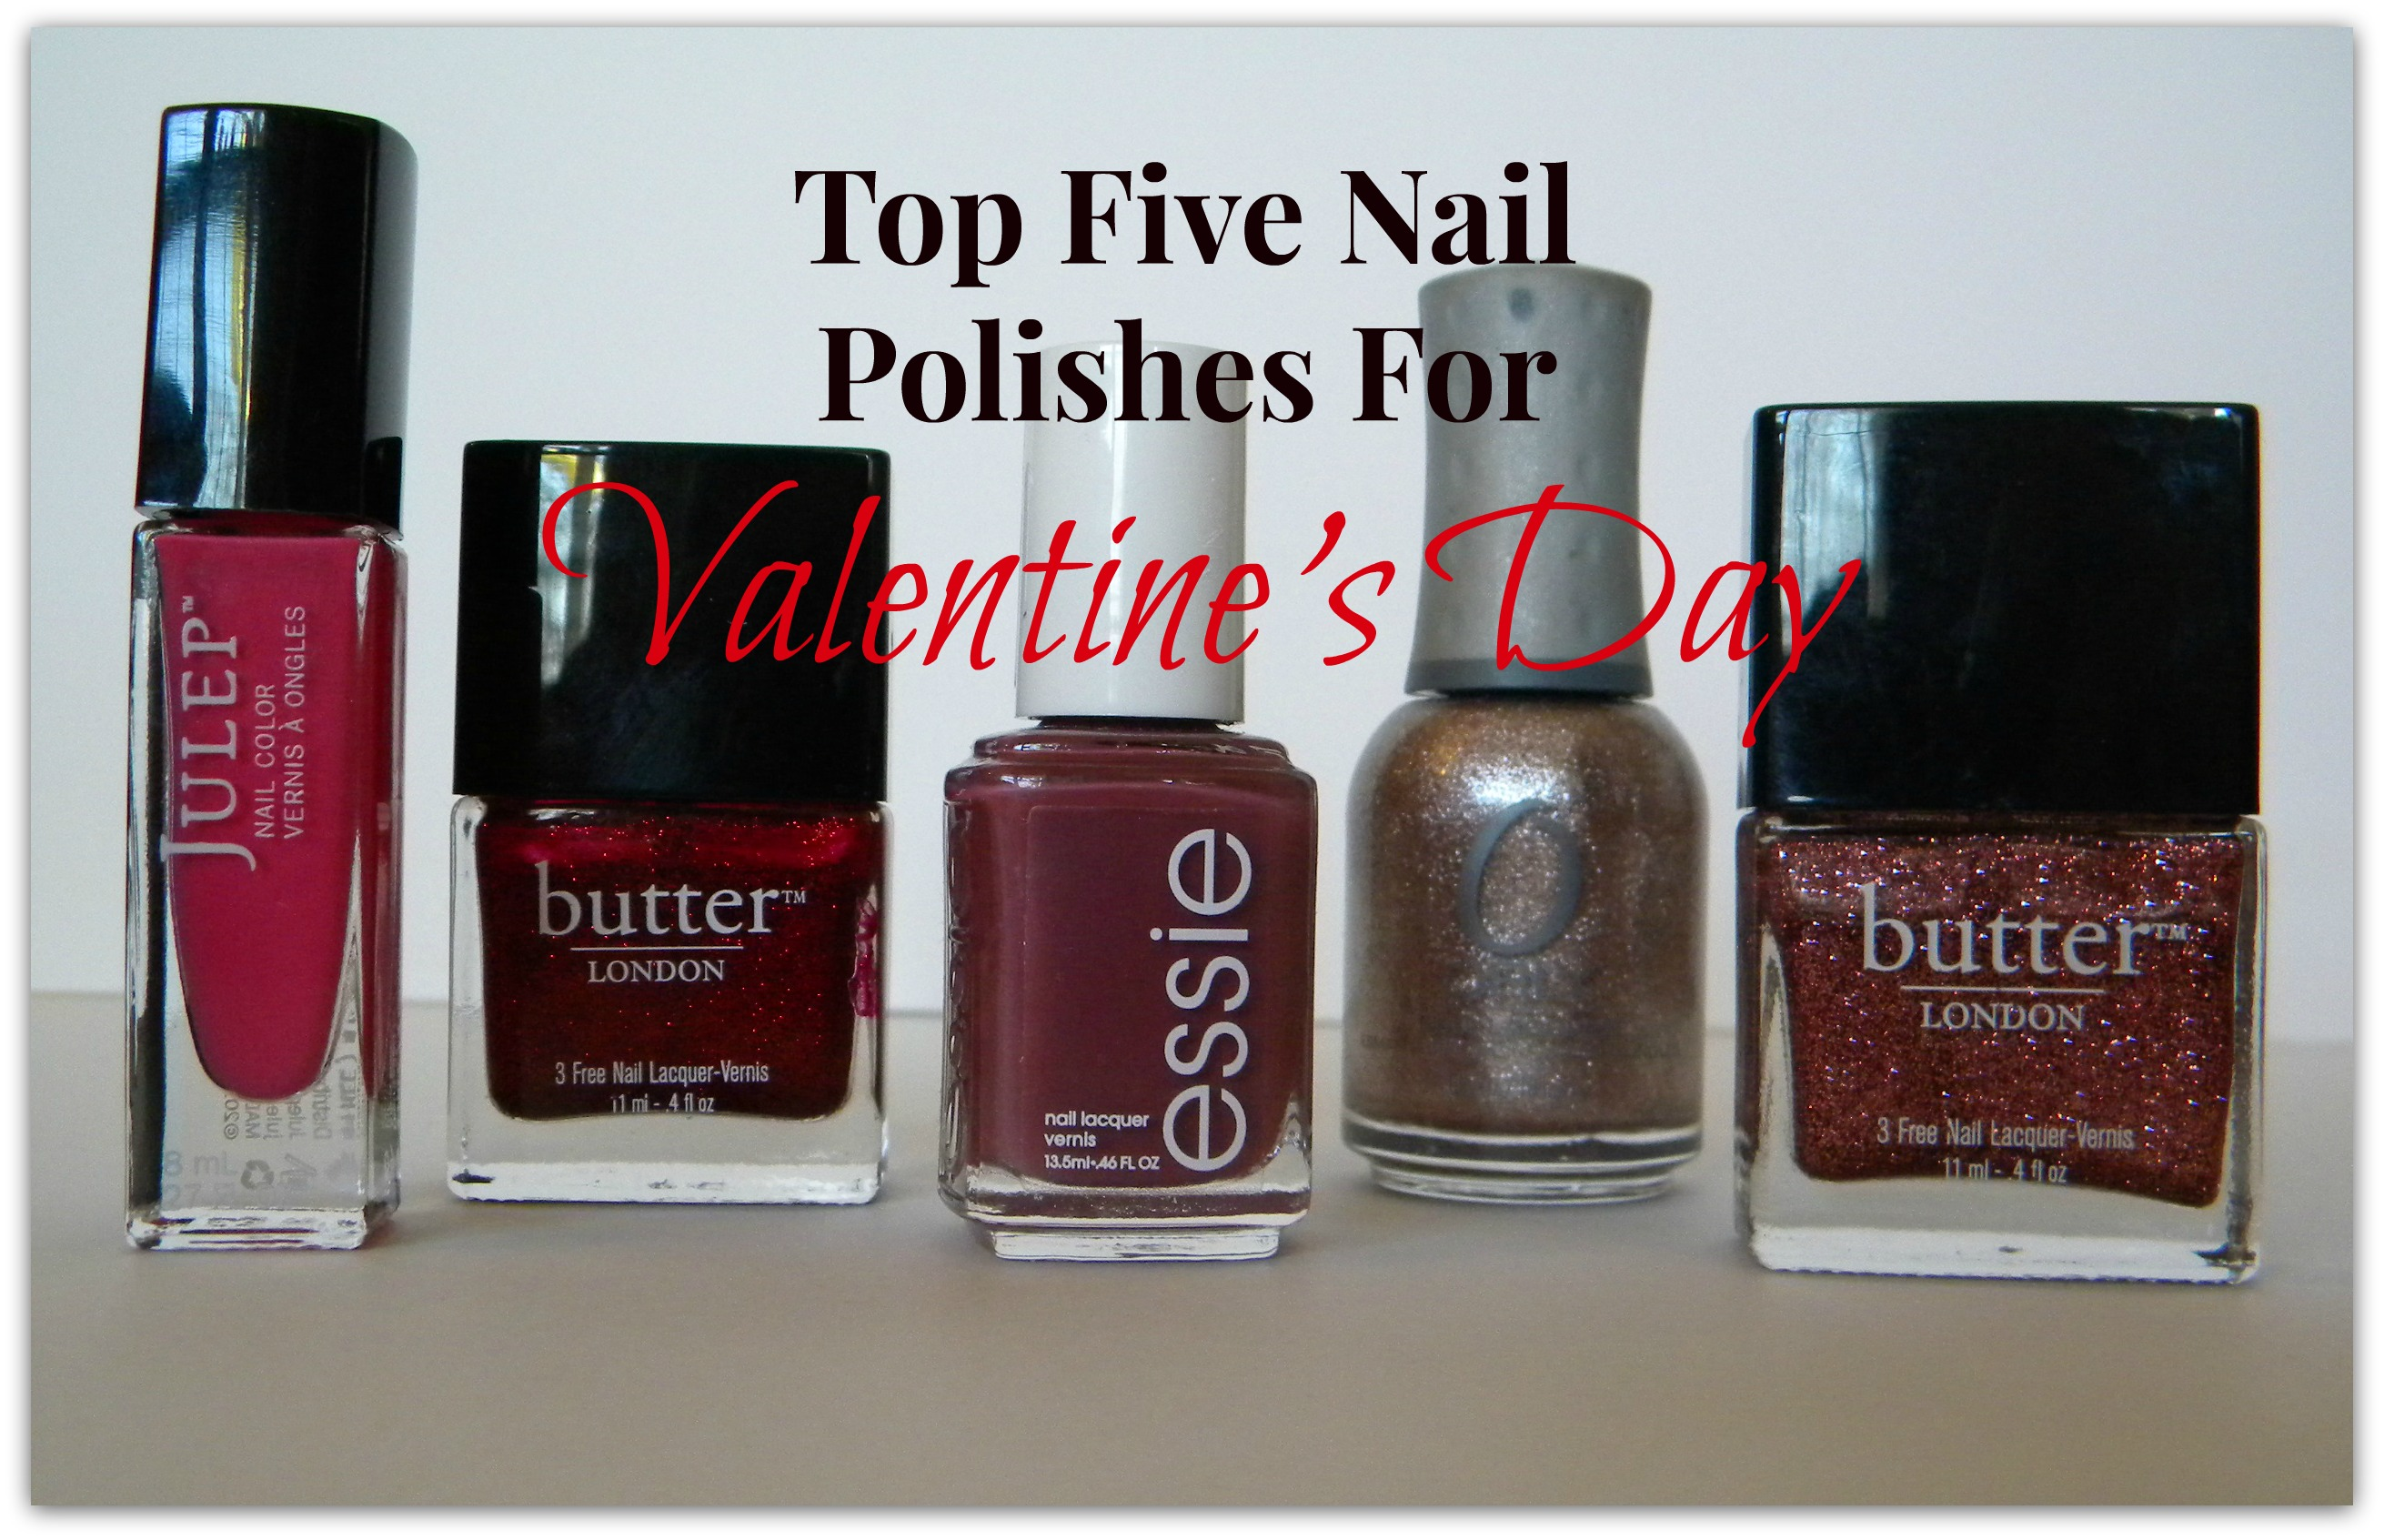 Top Five Nail Polishes For Valentine's Day